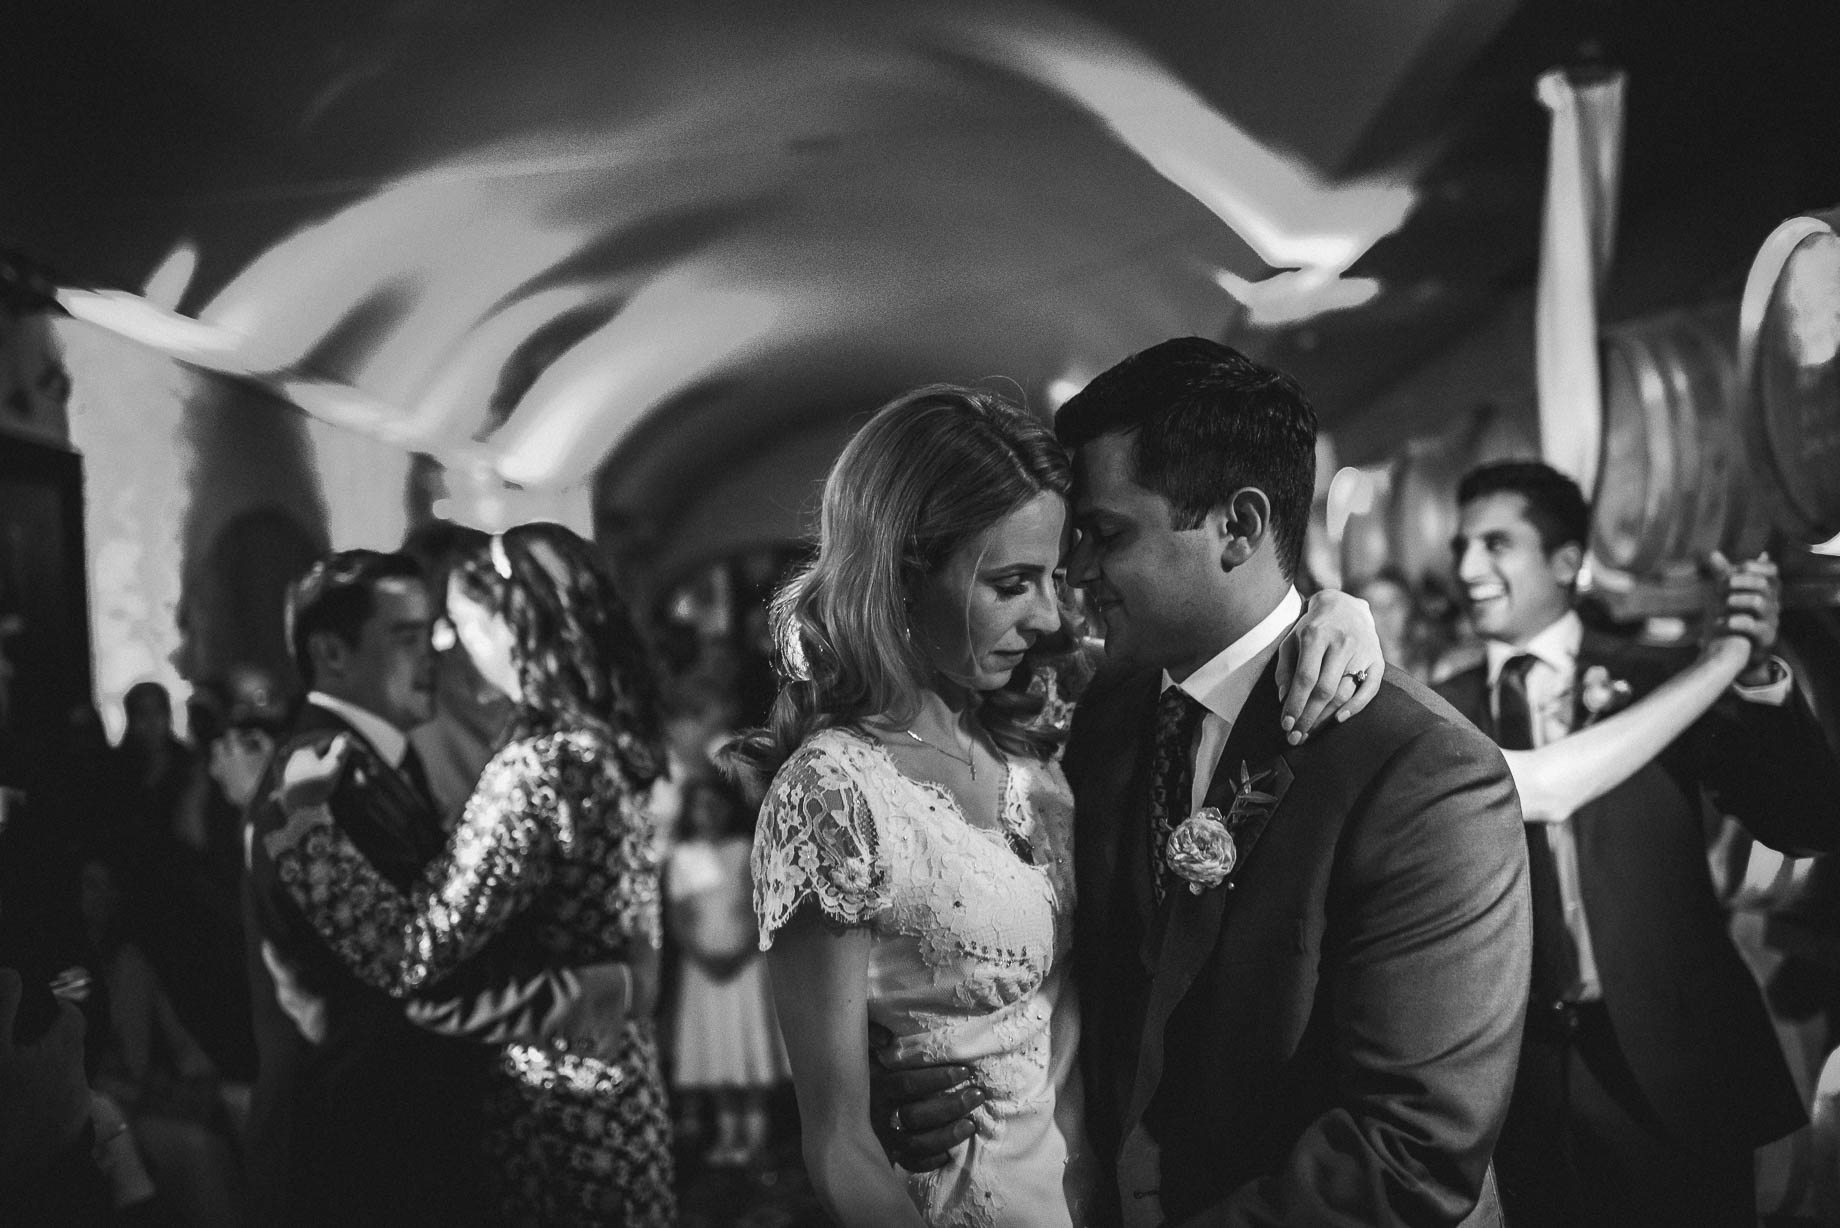 Tuscany wedding photography - Roisin and Moubin - Guy Collier Photography (225 of 251)